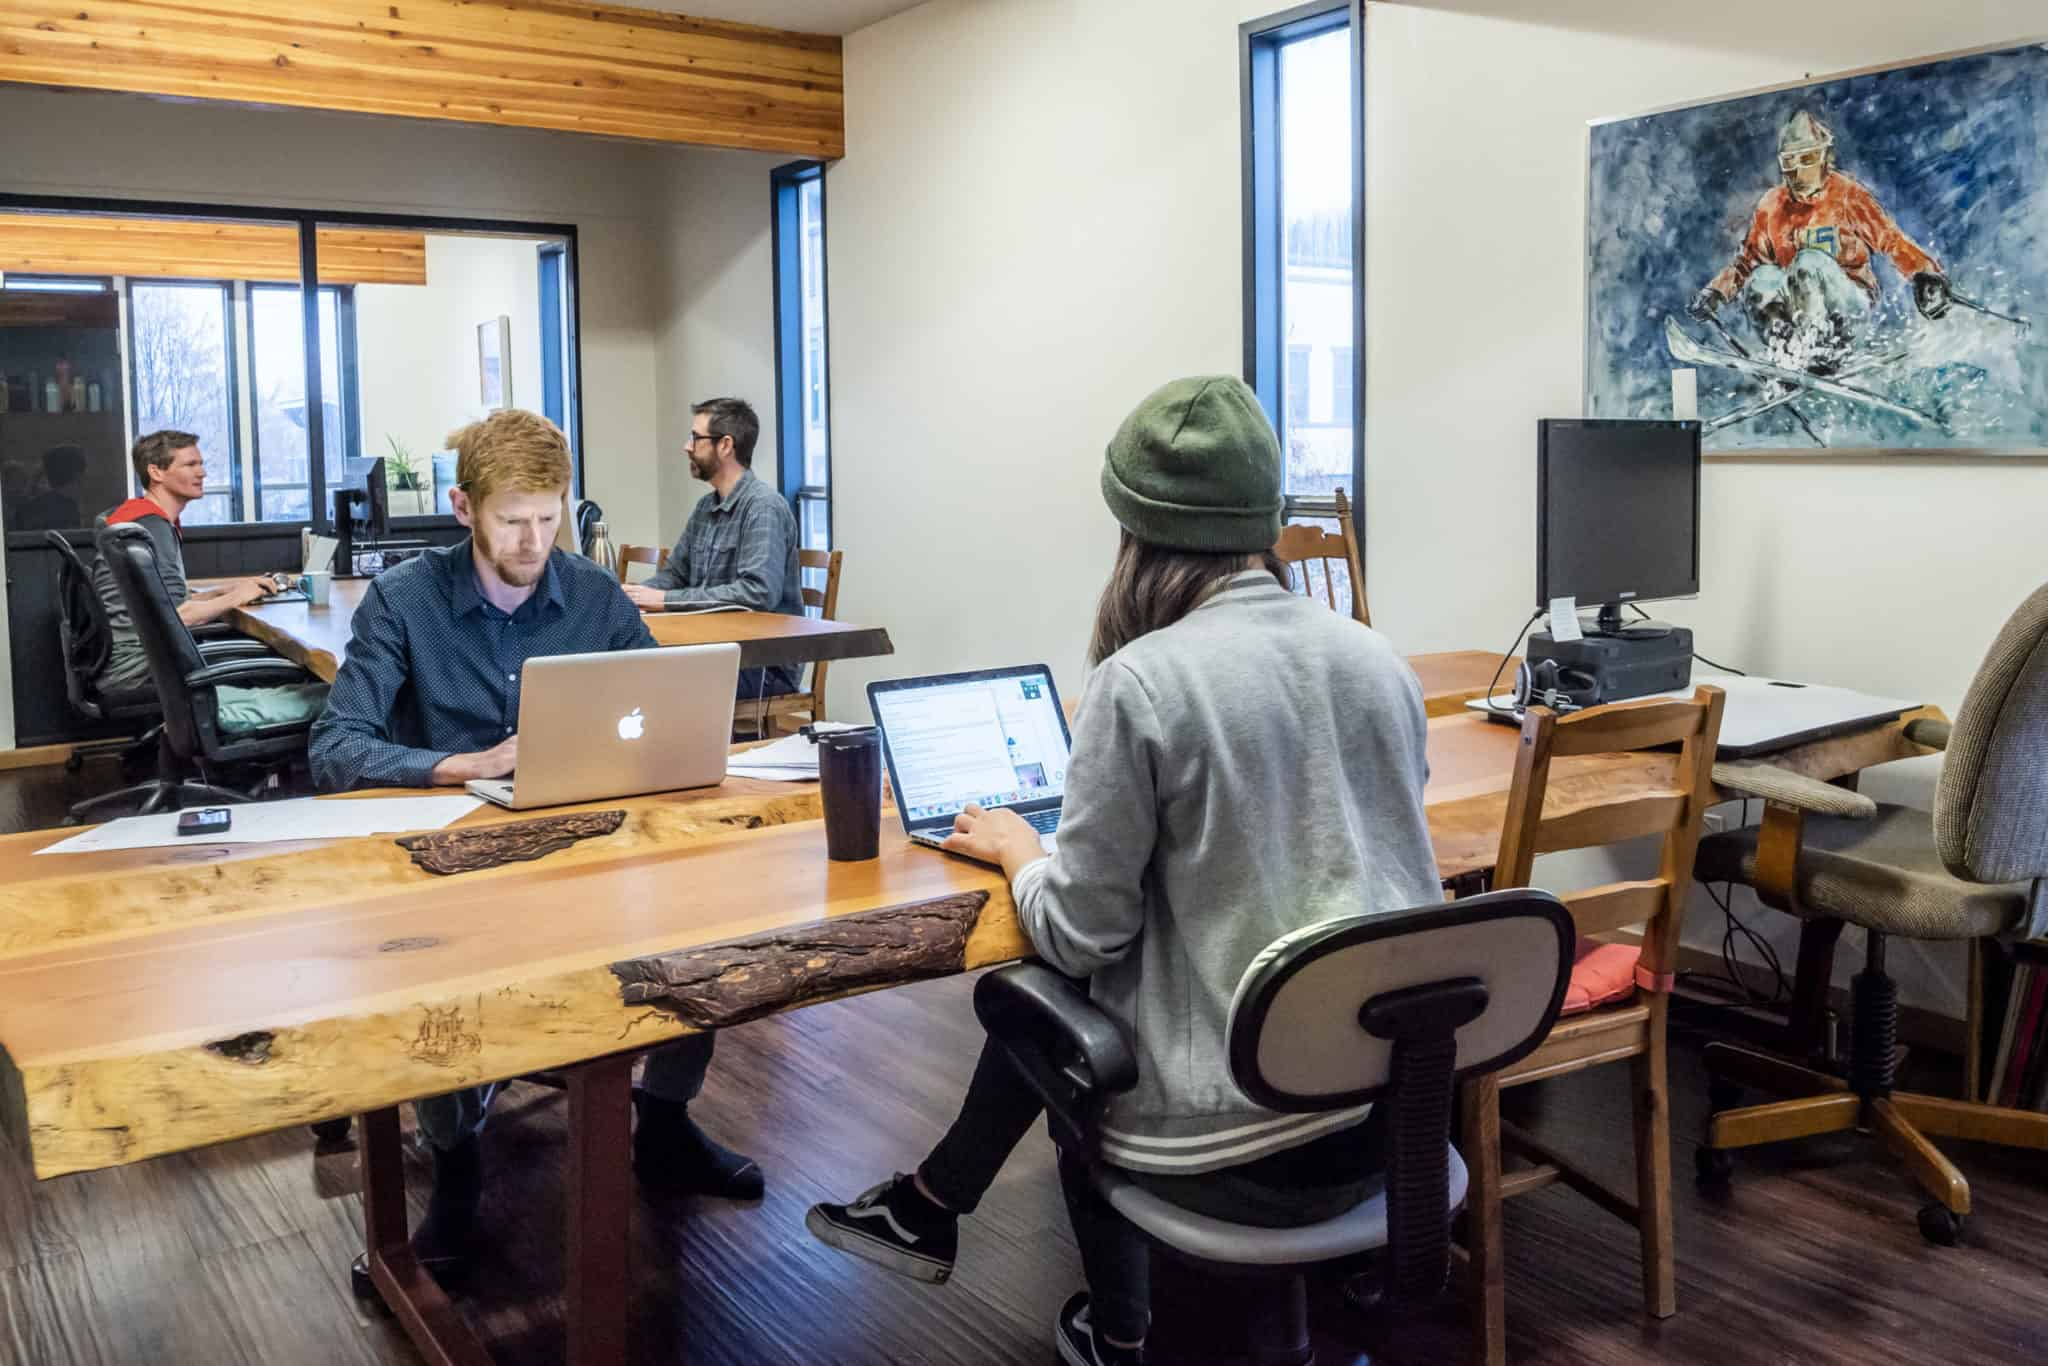 mountain-colab-remote-working-space-shared-offices